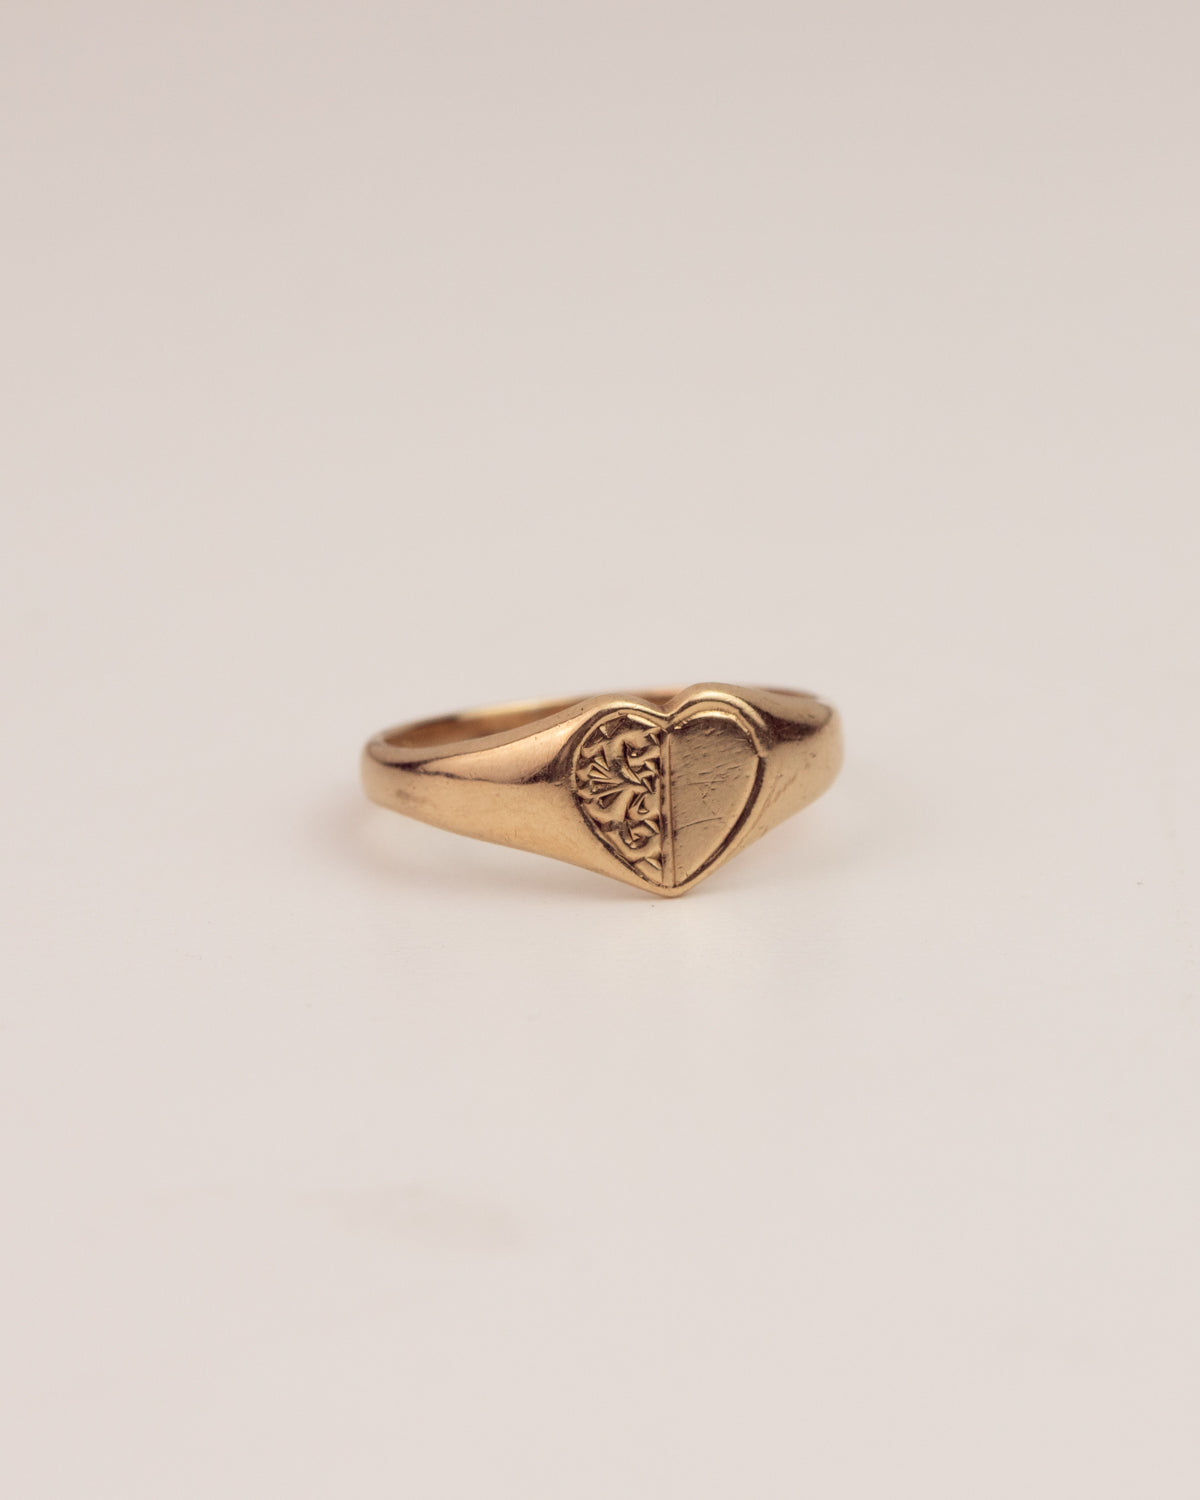 Image of Marcella Exclusive Vintage 9ct Gold Heart Signet Ring